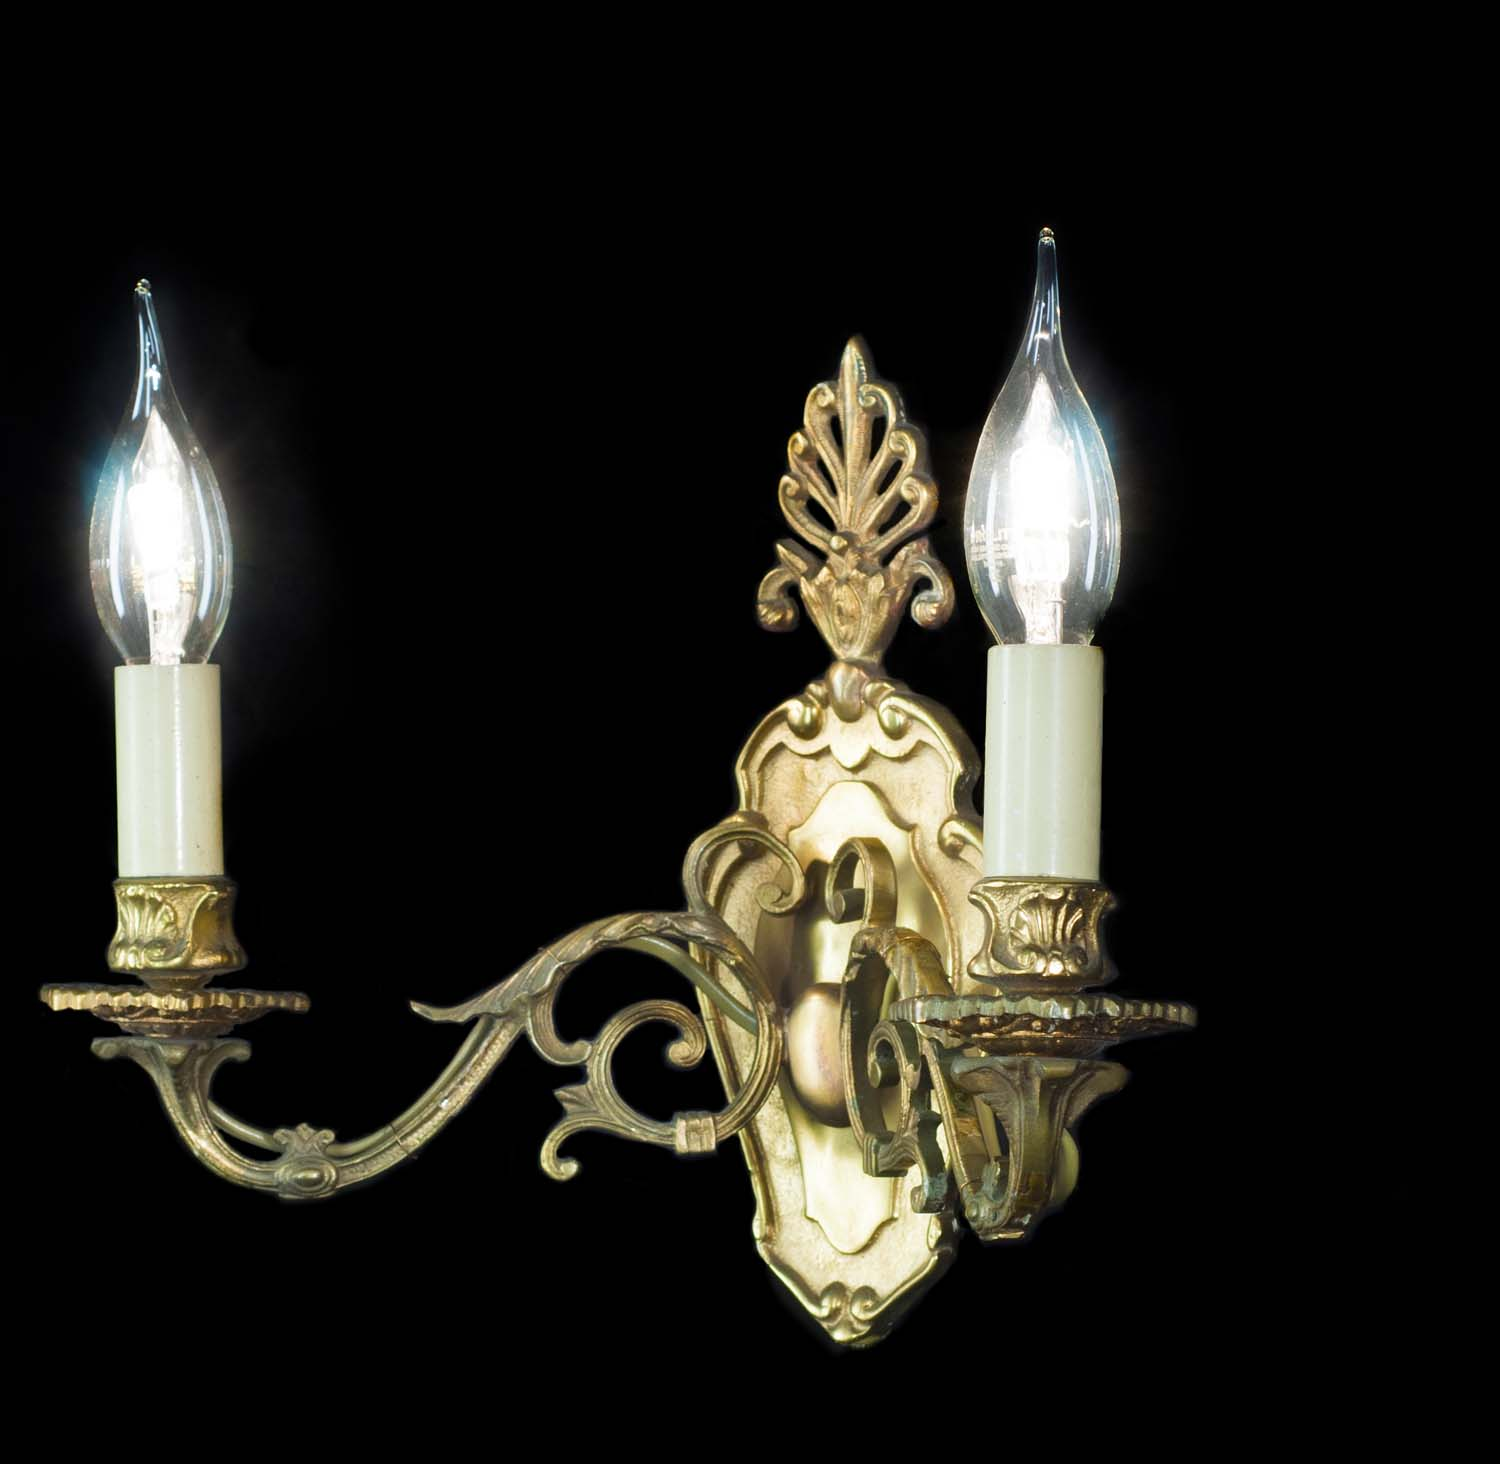 A 20th century pair of Regency style brass wall lights